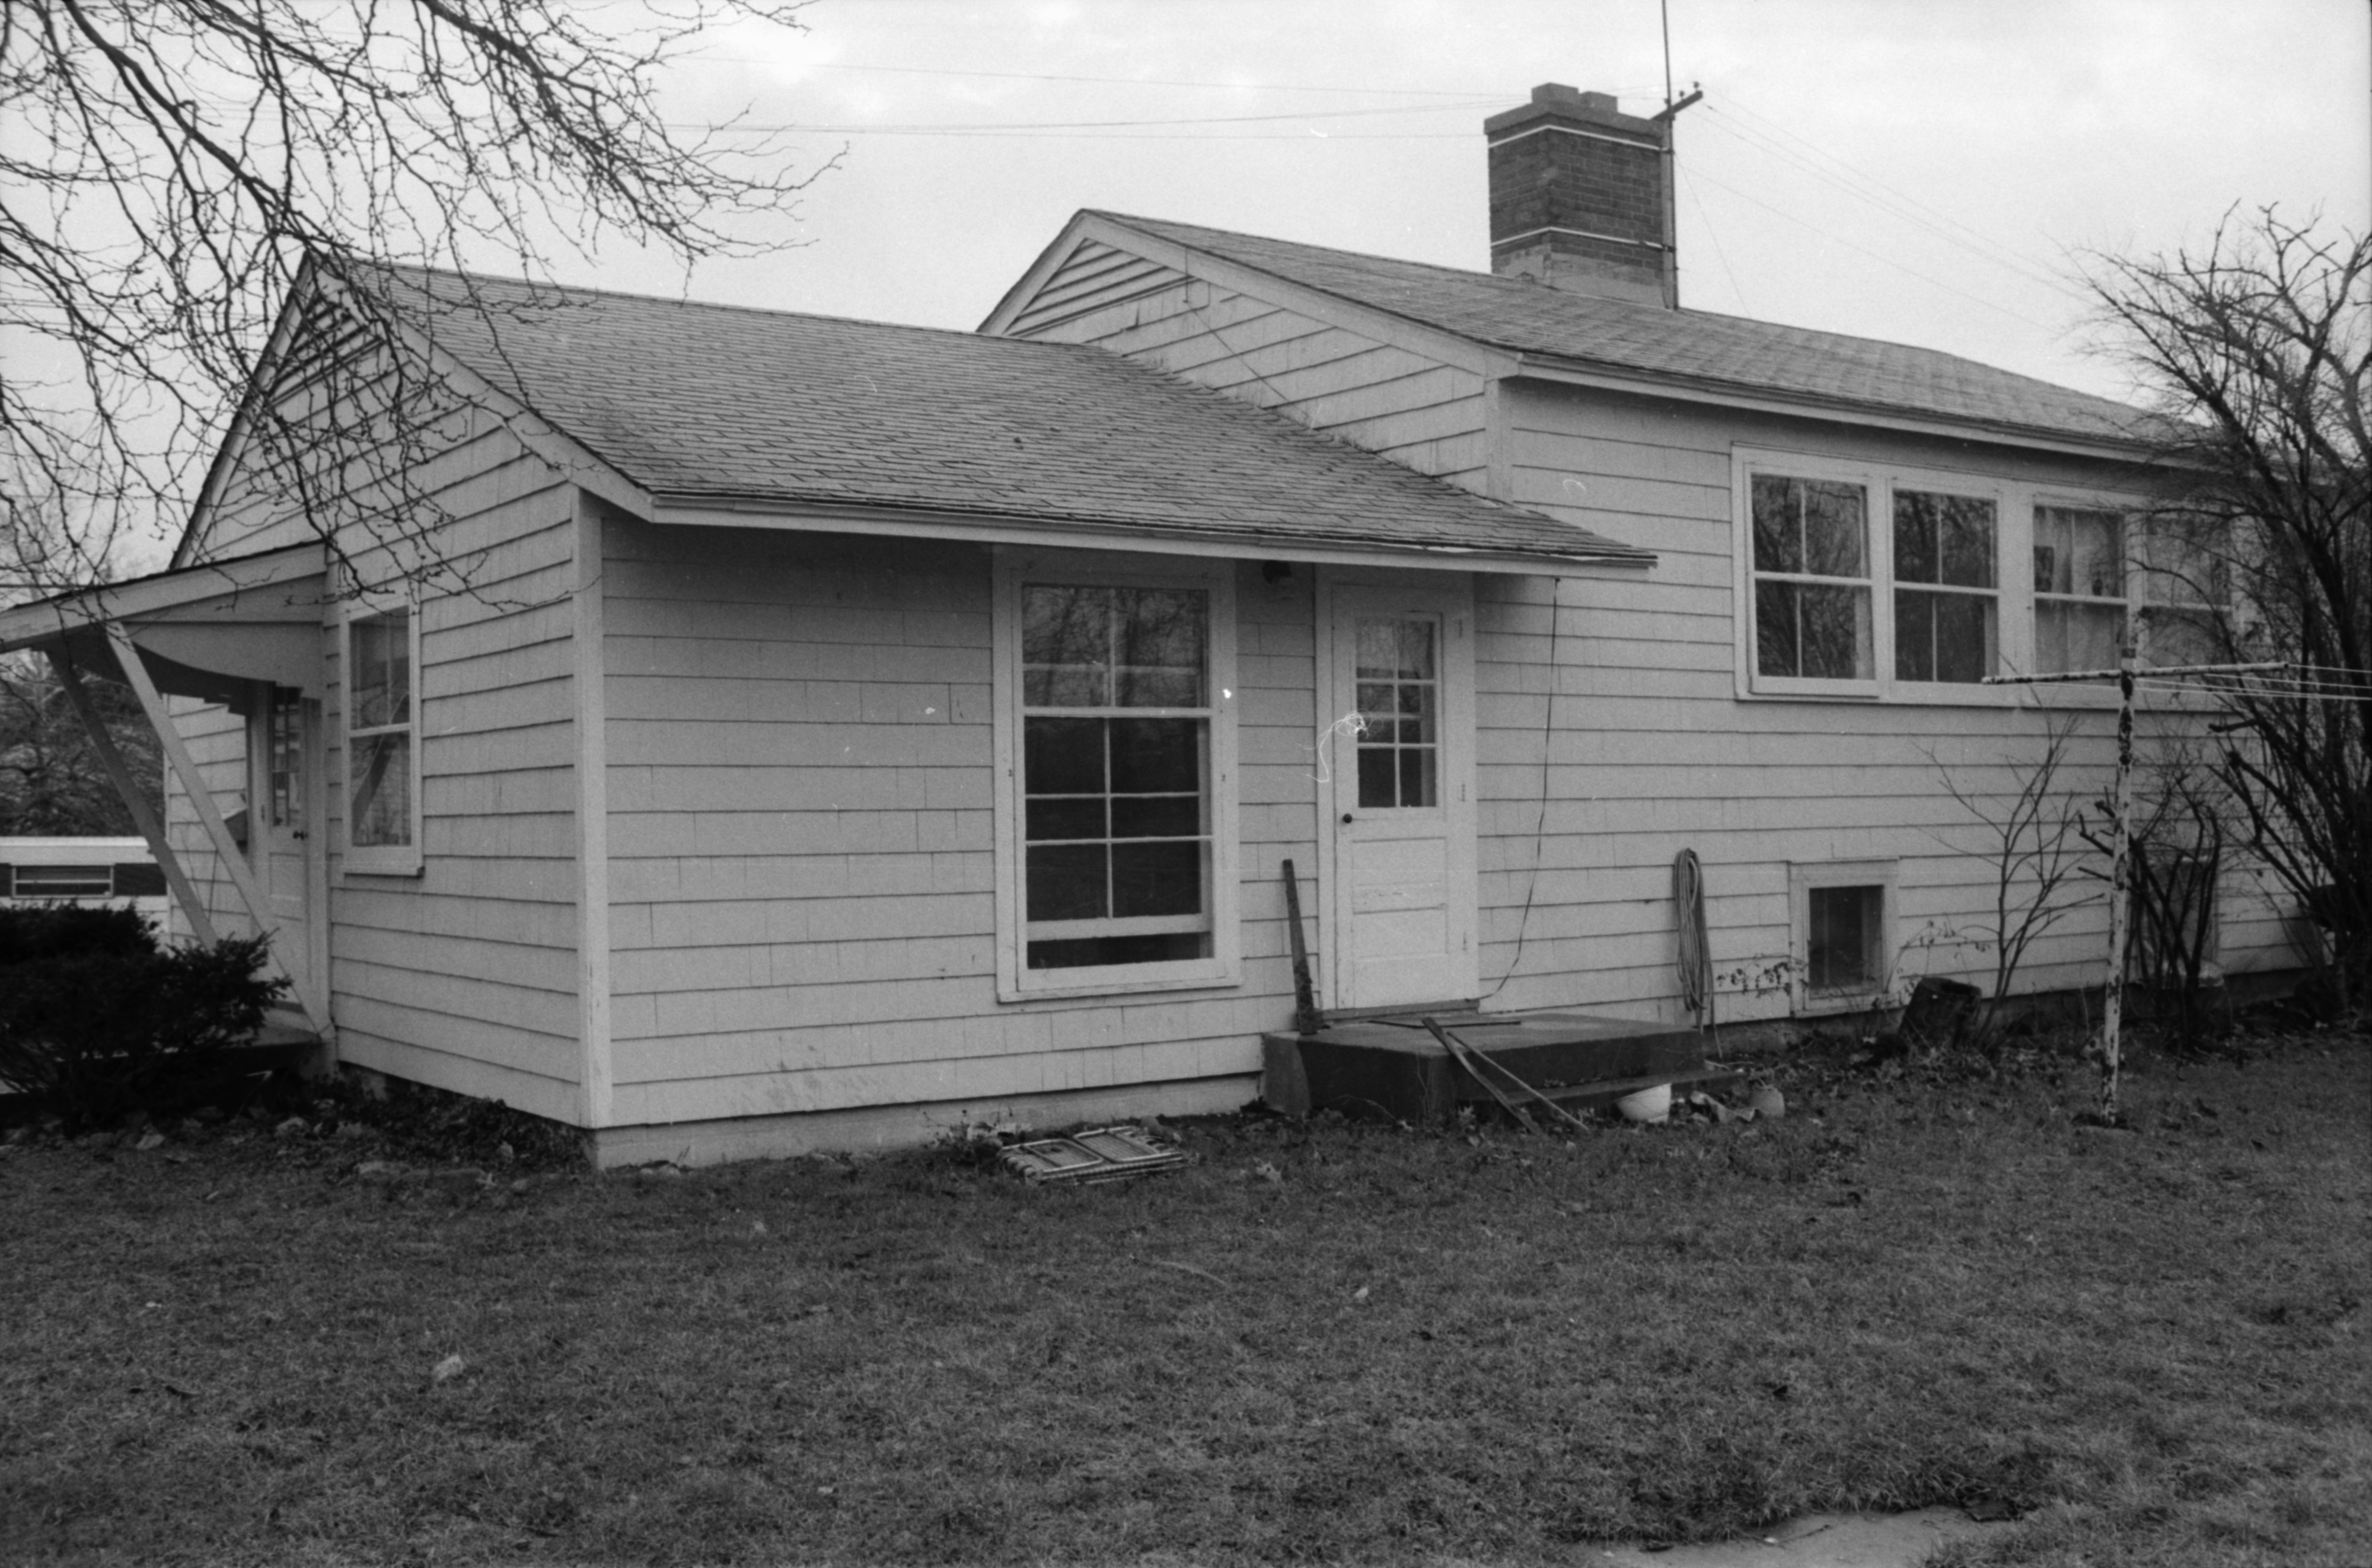 Exterior View of Home at Pittsfield Village, 1983 image